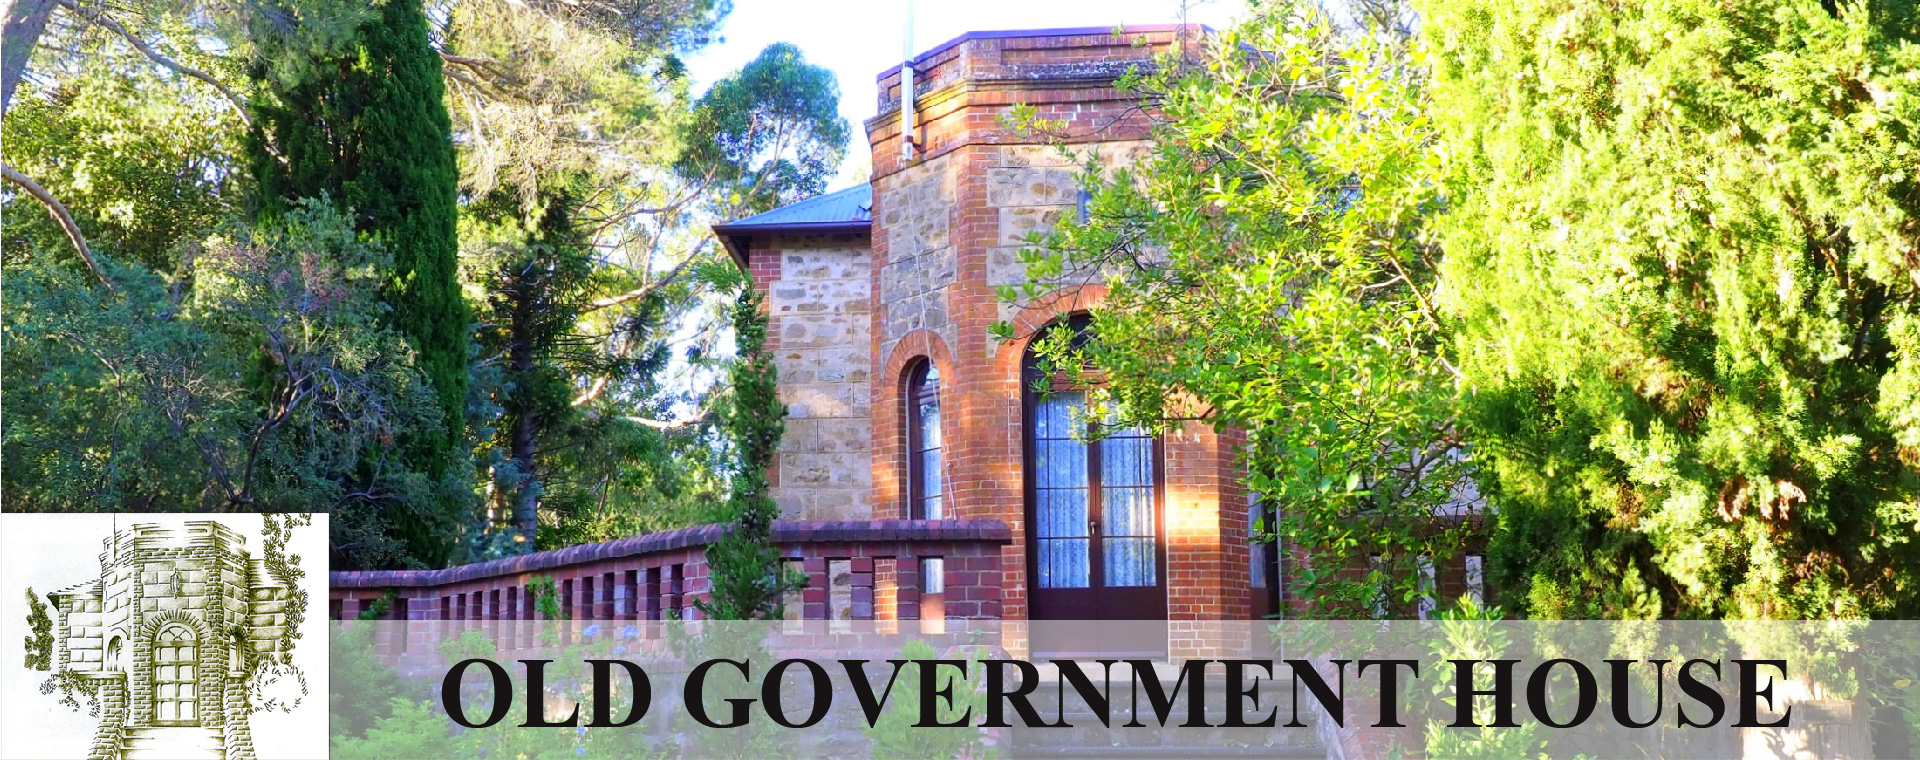 Friends of Old Government House Inc